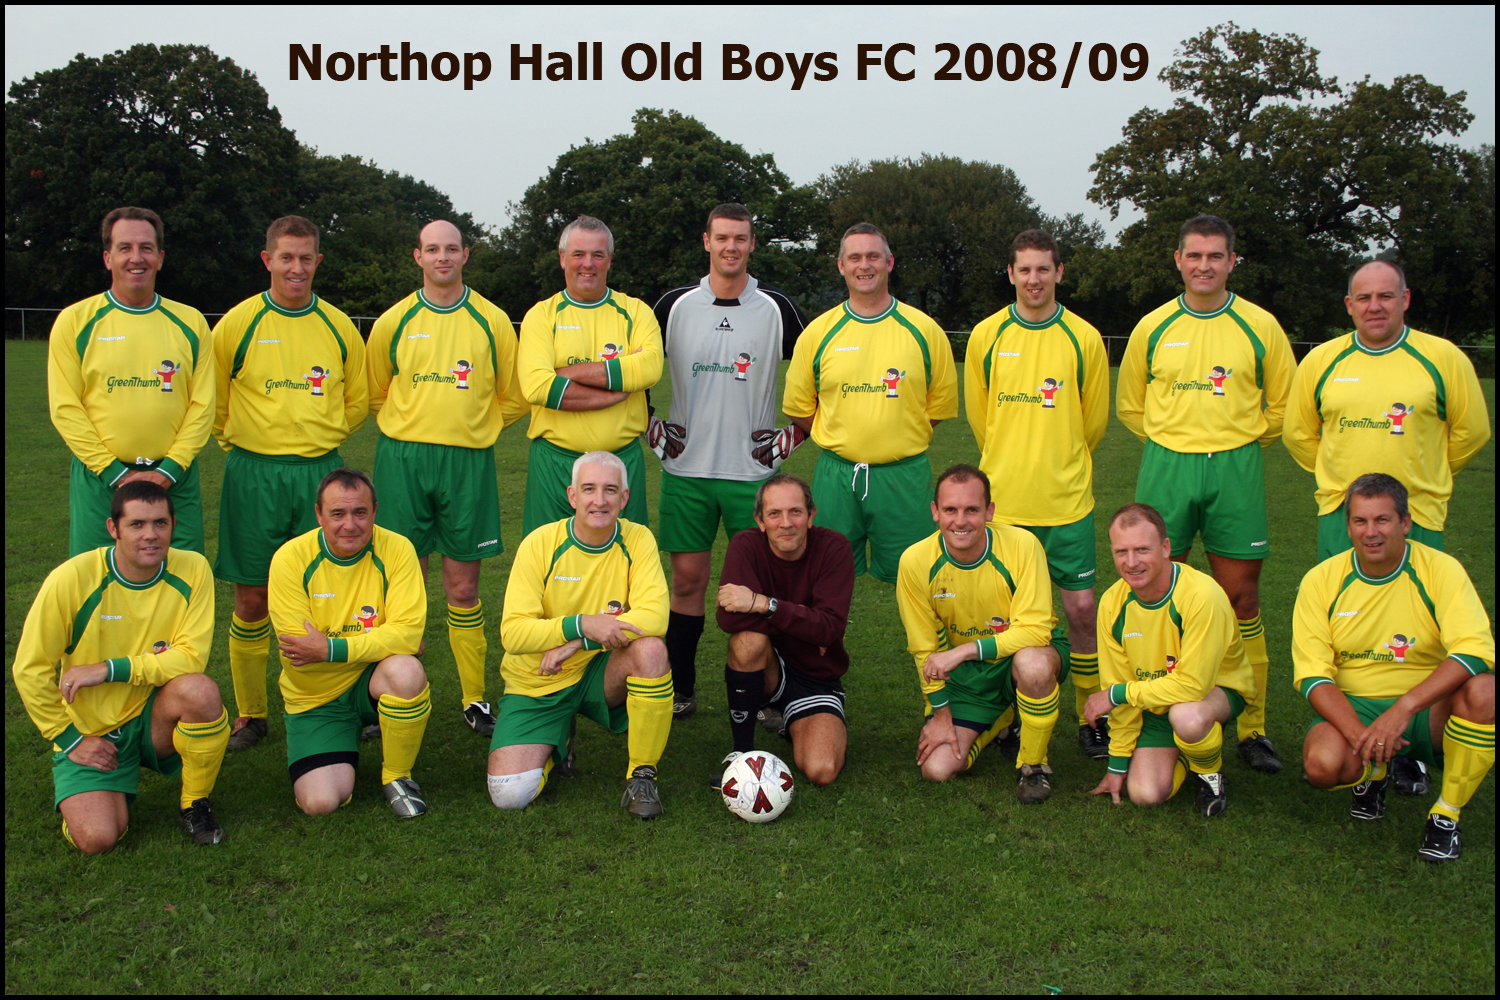 Northop Hall Old Boys 2008/09 Season